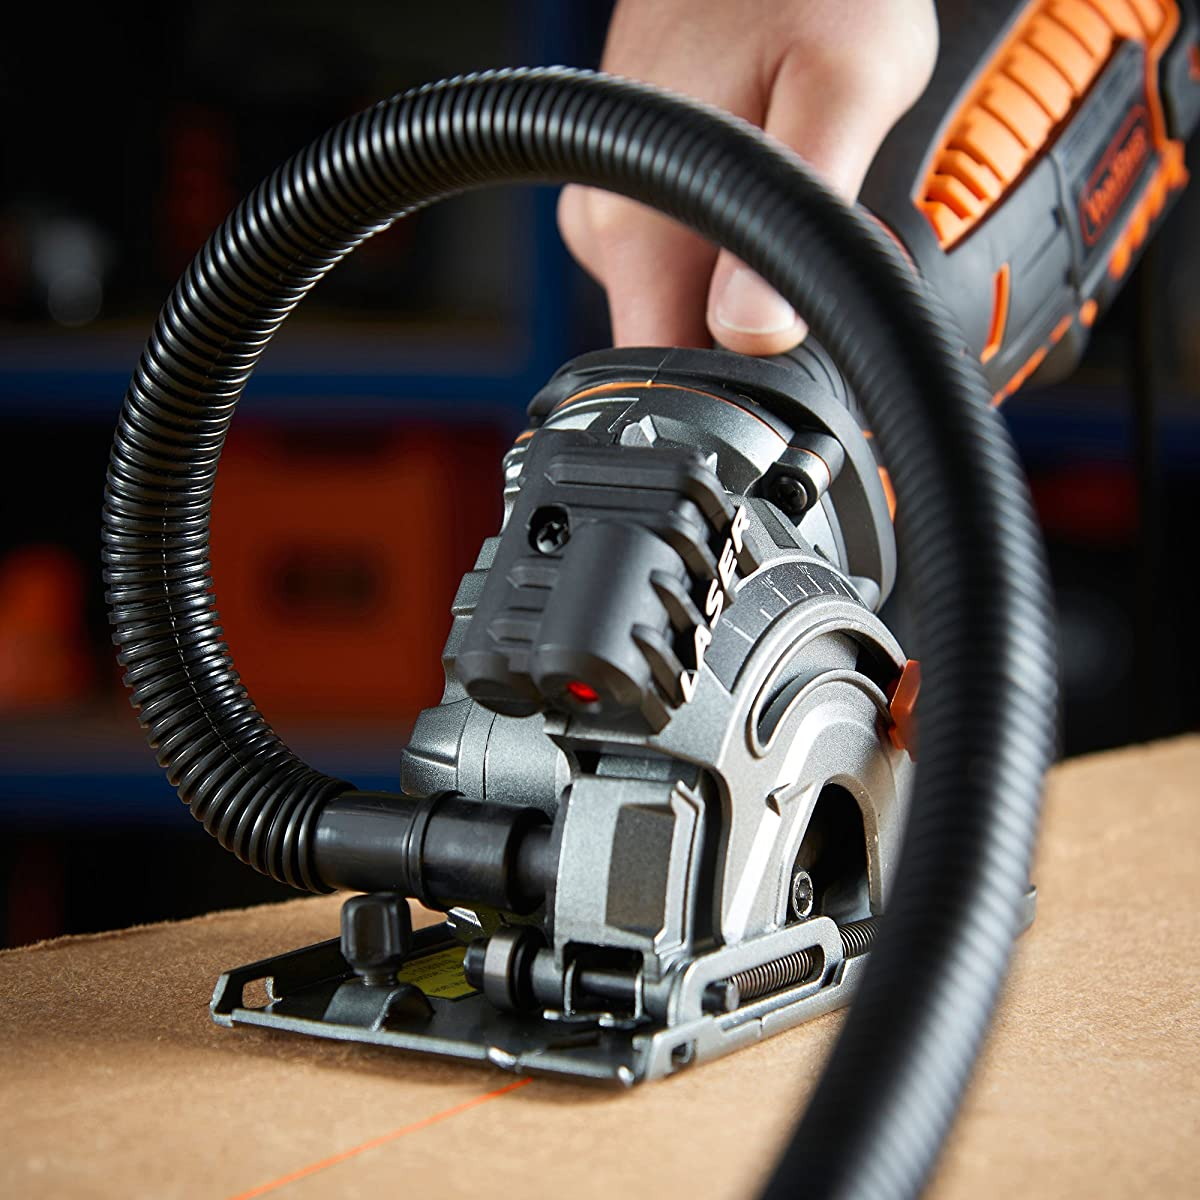 Vonhaus Ultra Compact Circular Saw 5 8 Amp With Laser